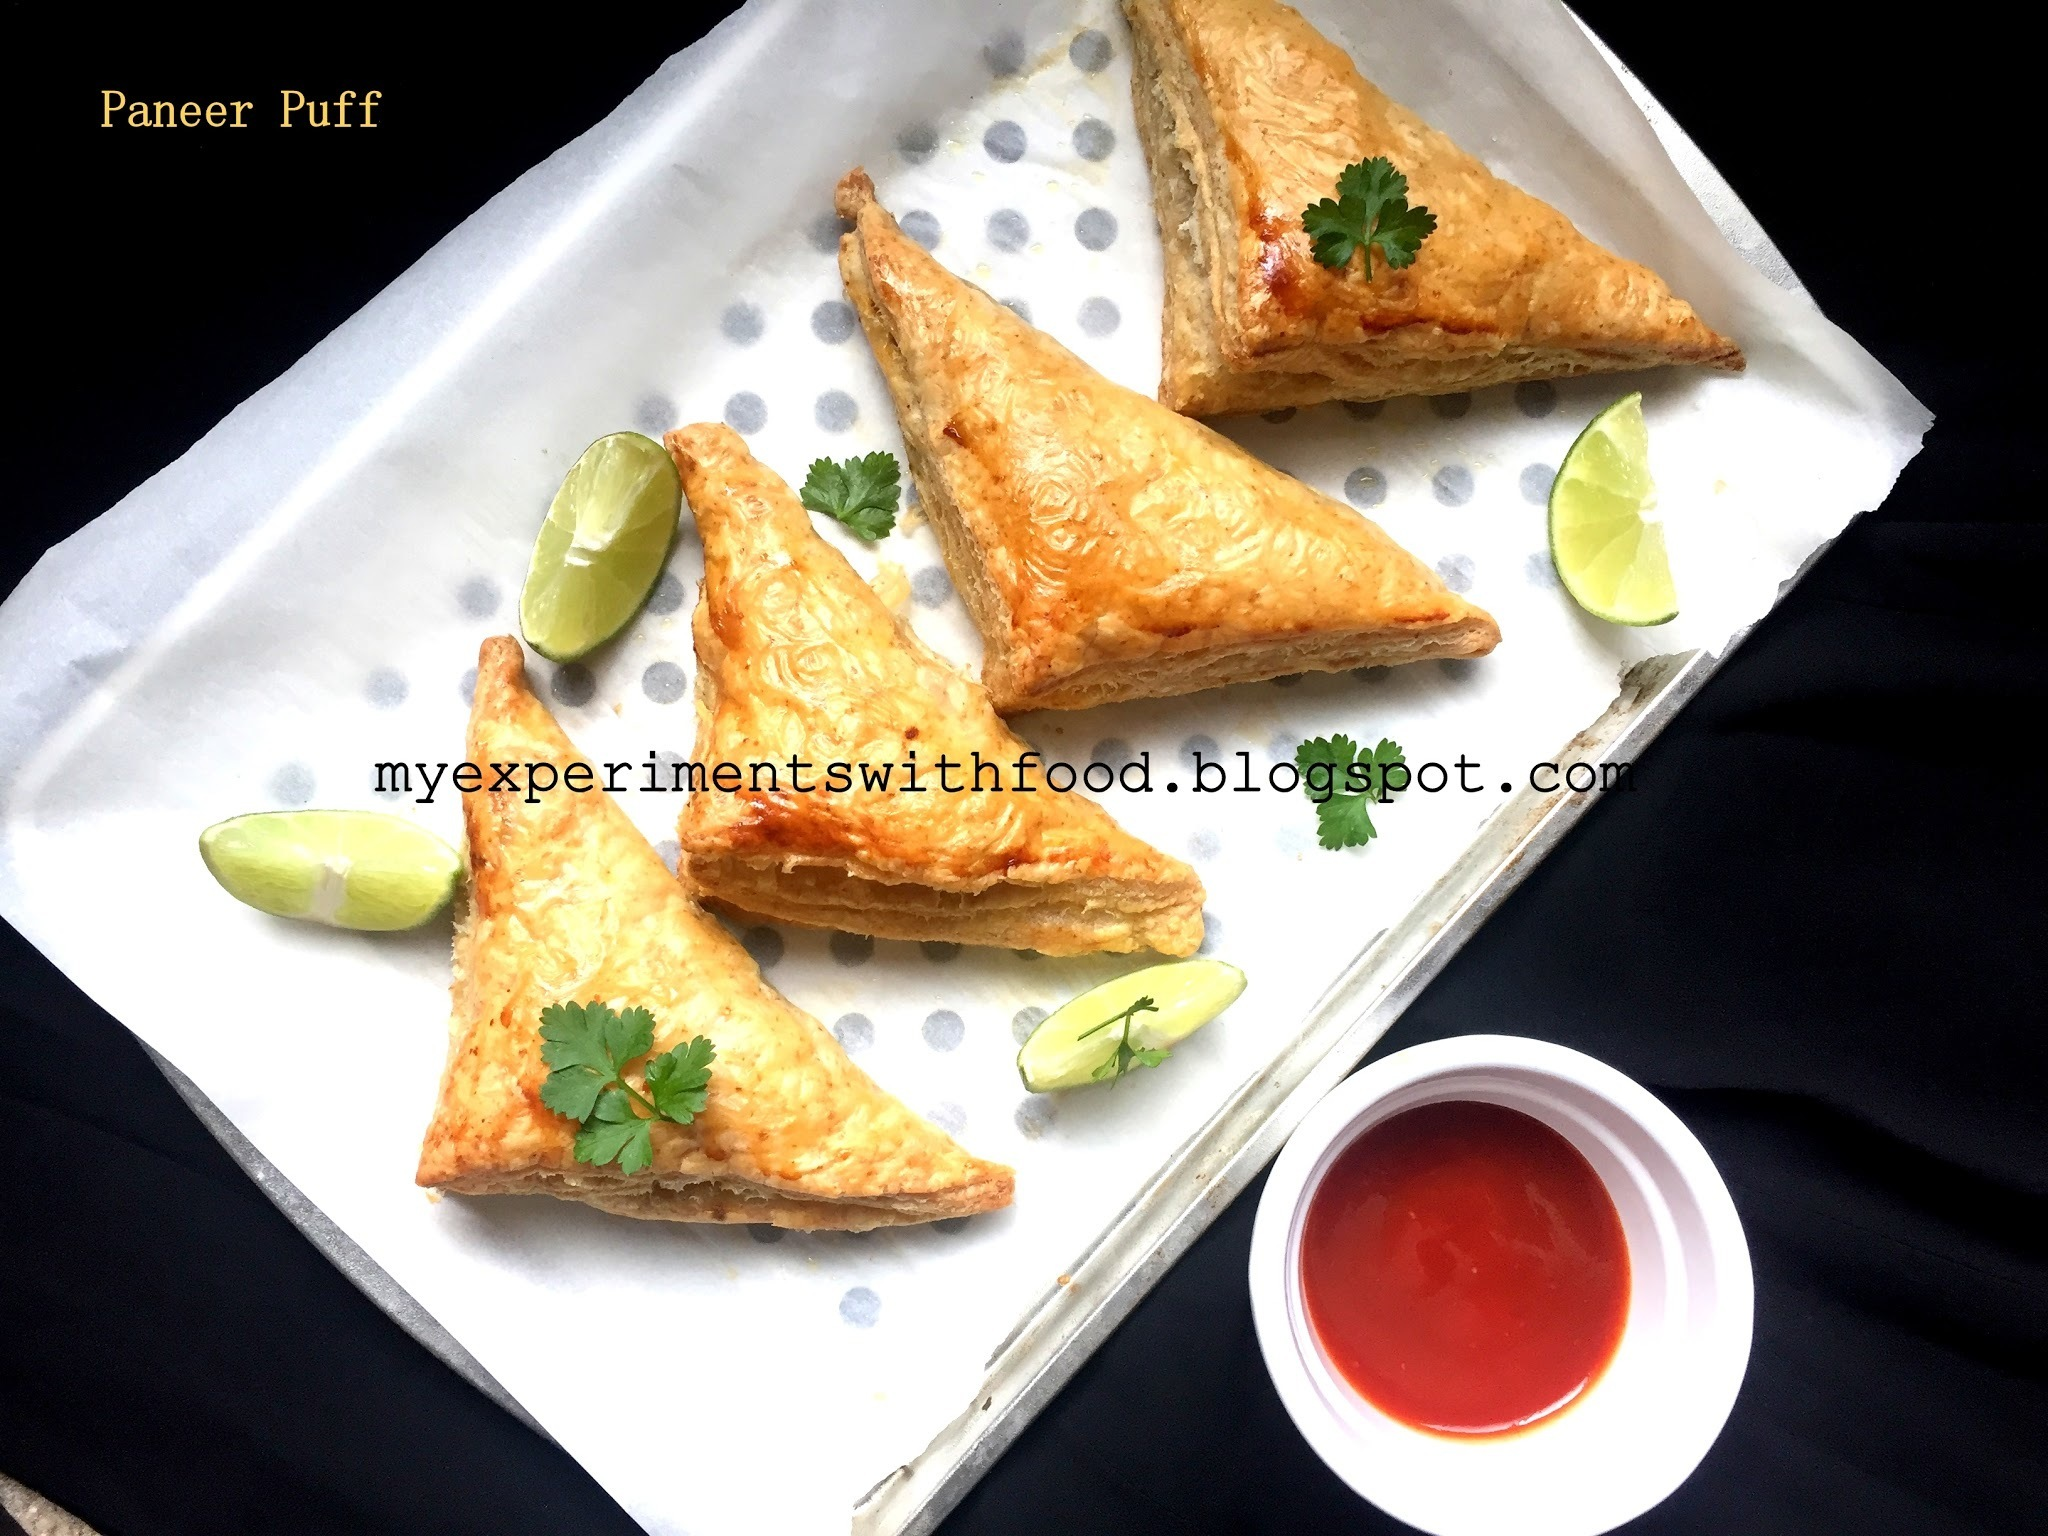 Paneer( cottage cheese) Puffs